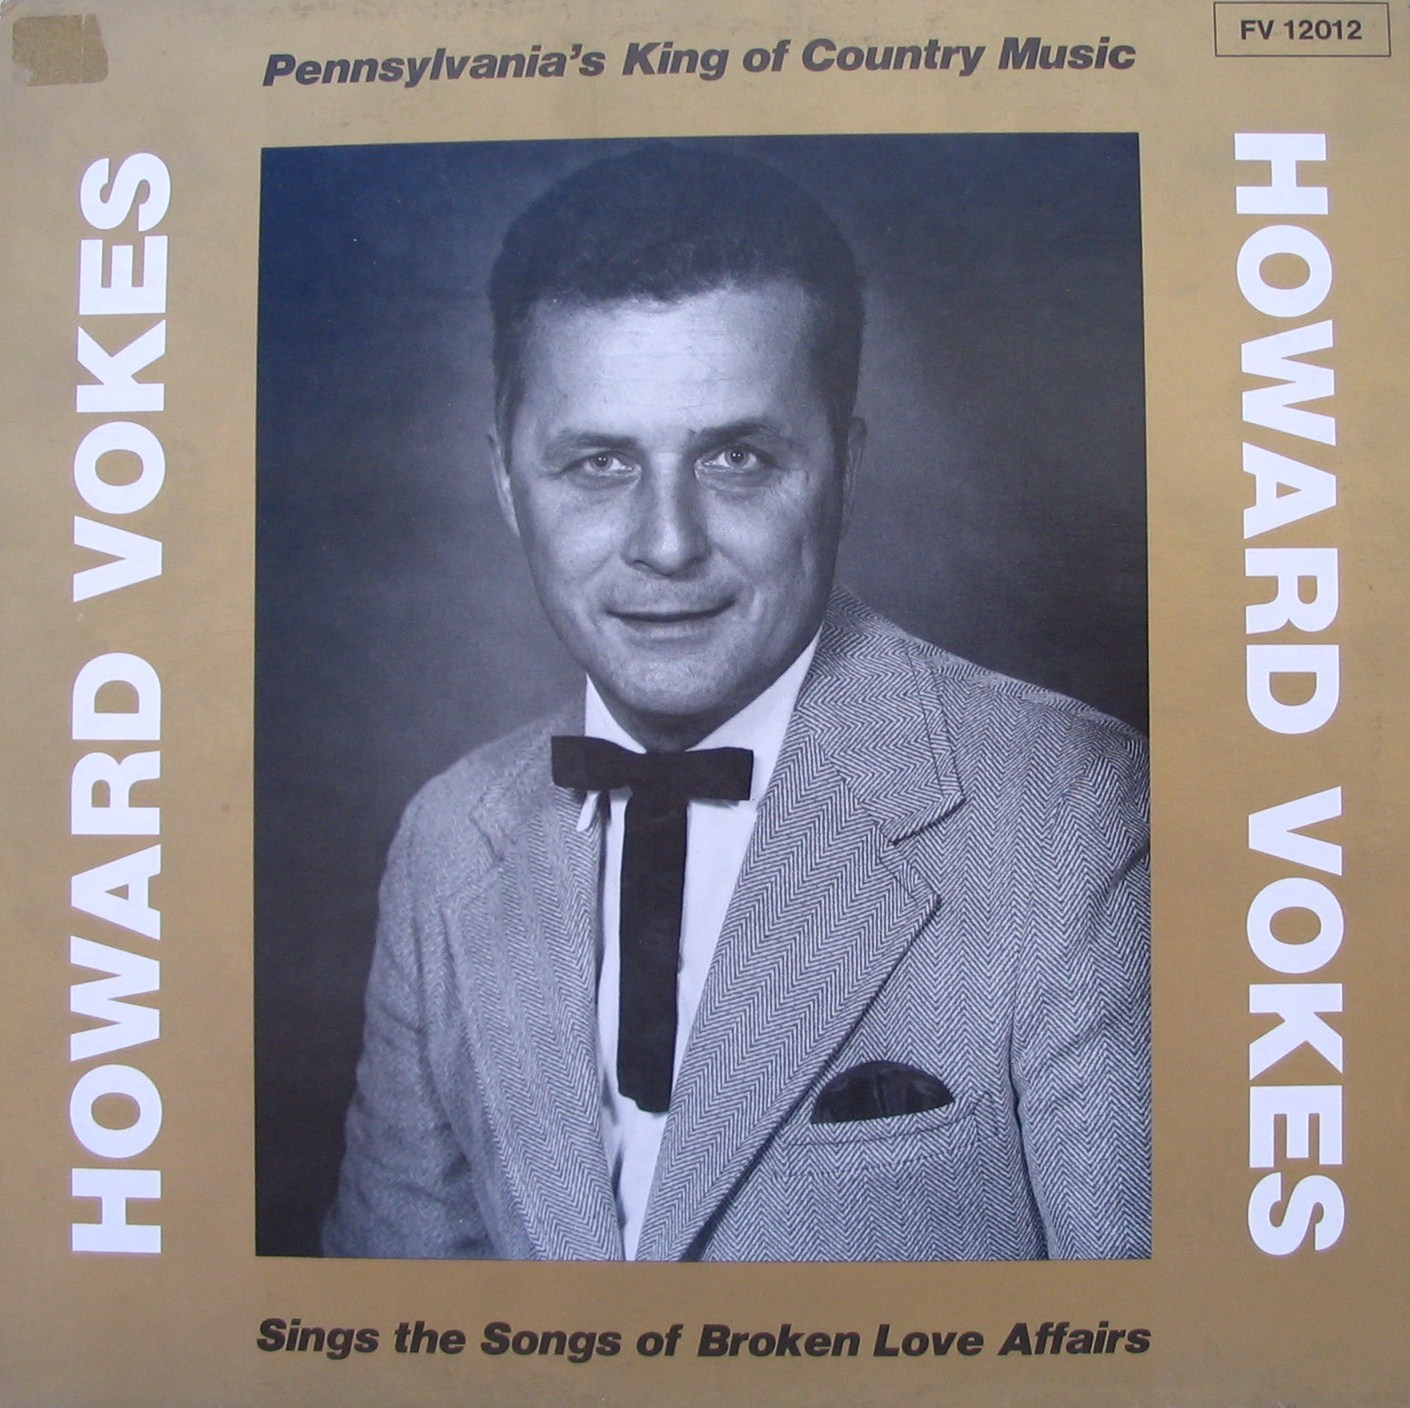 Howard Vokes LP cover